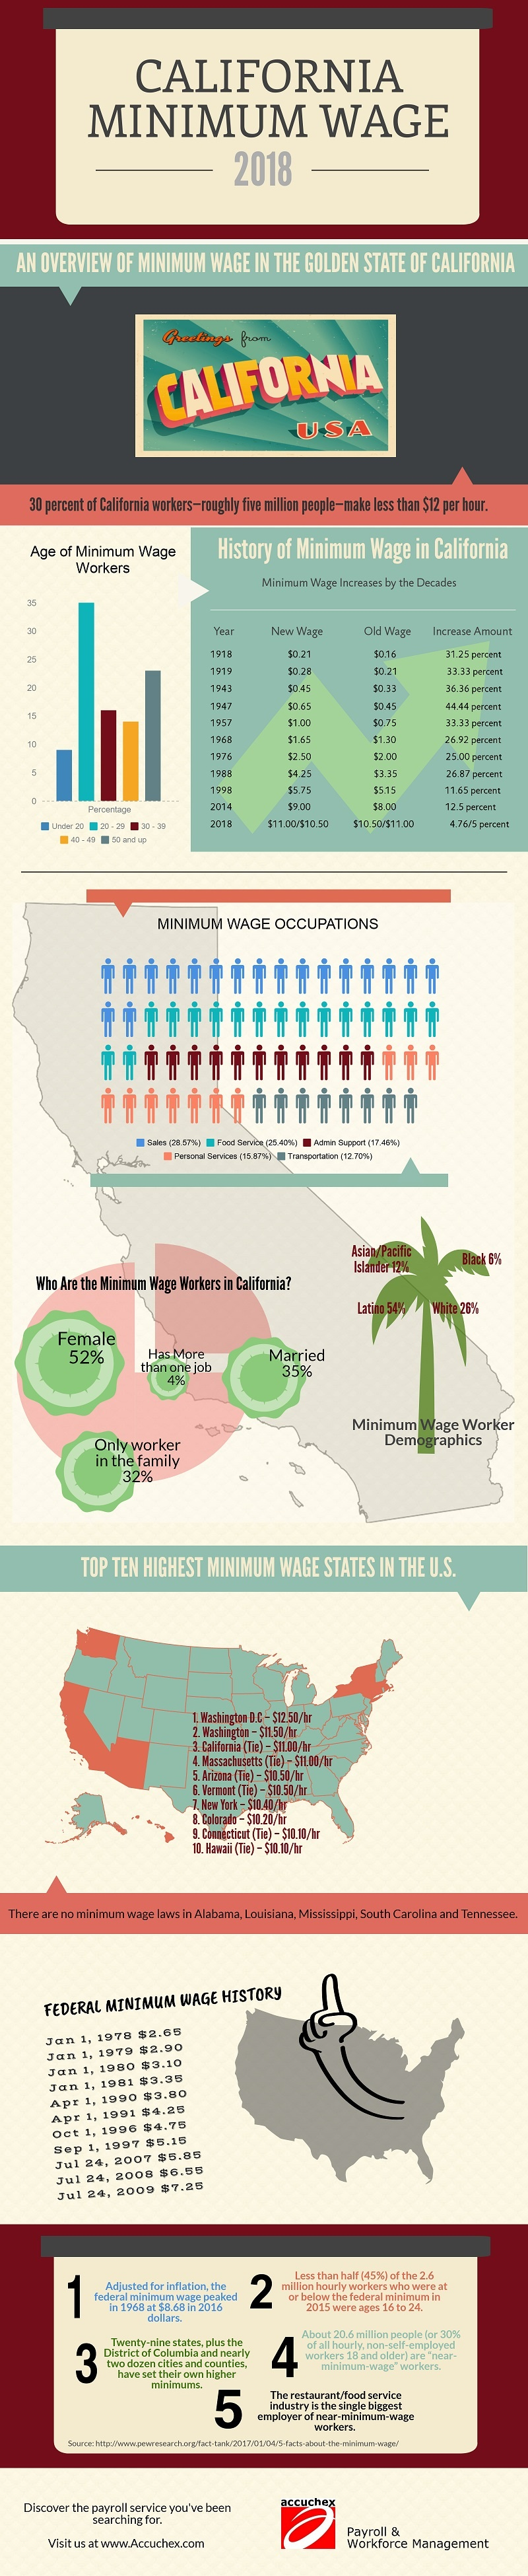 accuchex-california-minimum-wage-infographic.jpg